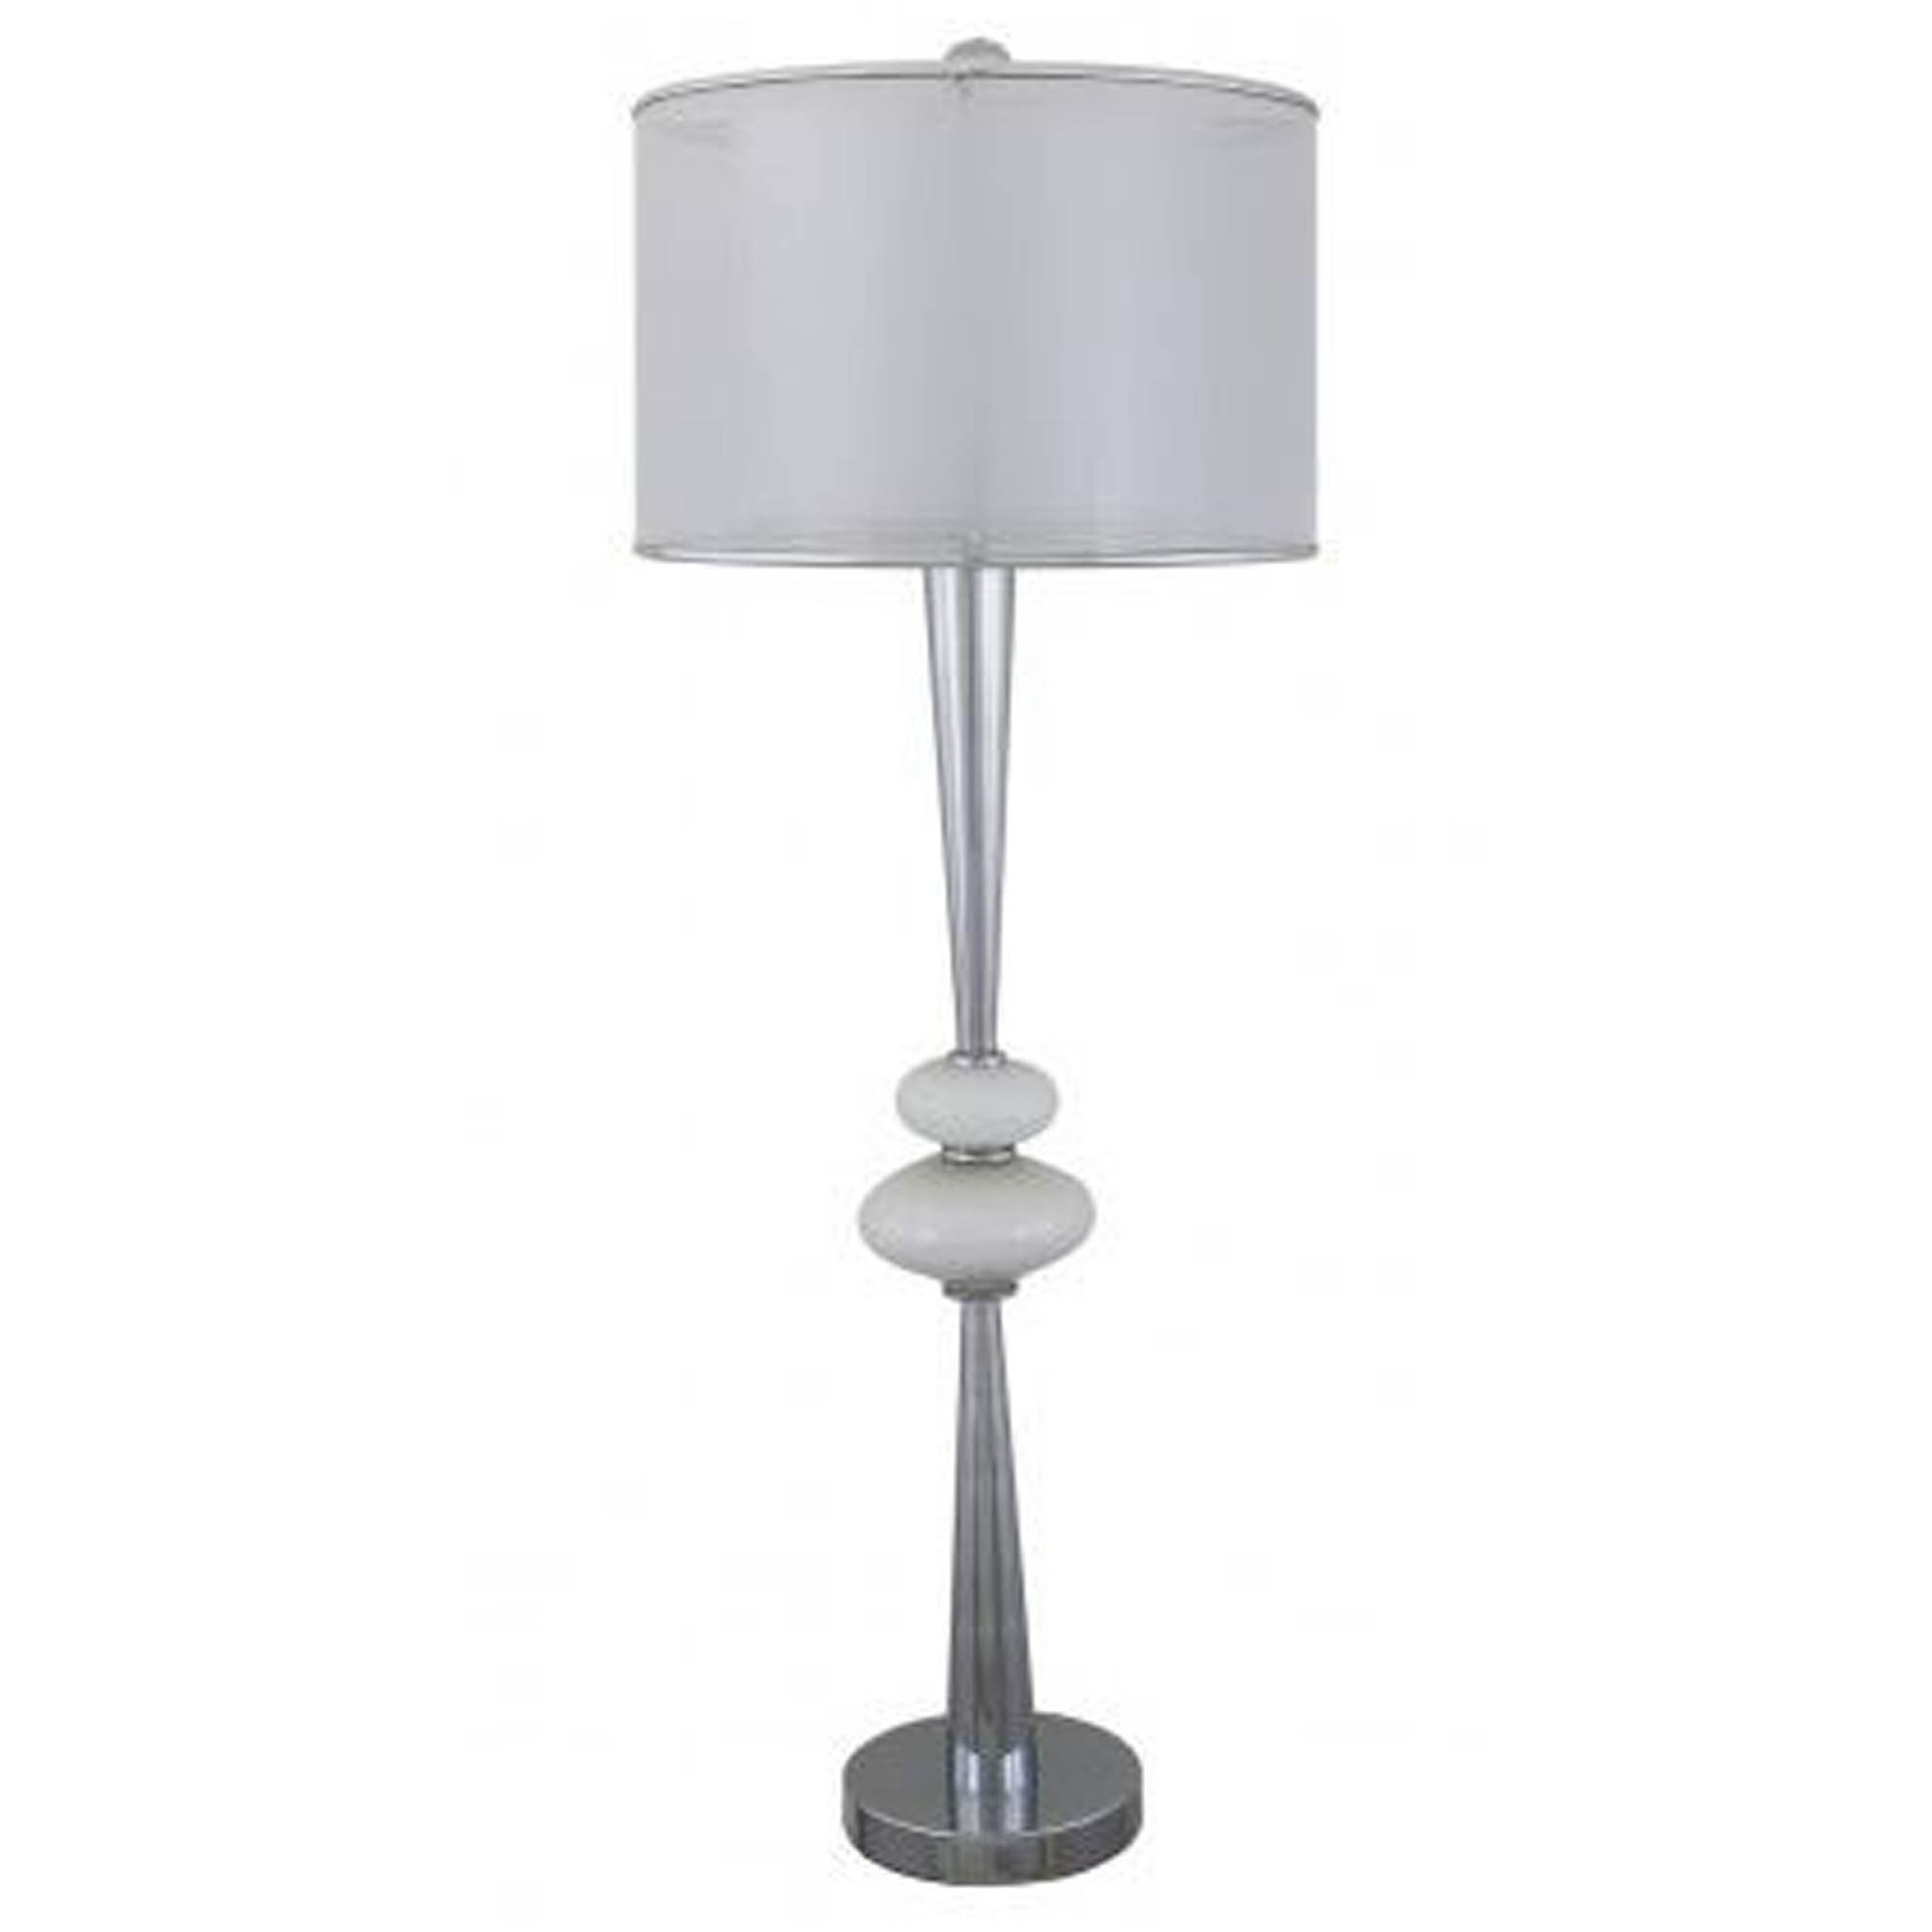 Pure white pearl pebble table lamp lamp homesdirect365 pure white pearl pebble table lamp aloadofball Choice Image